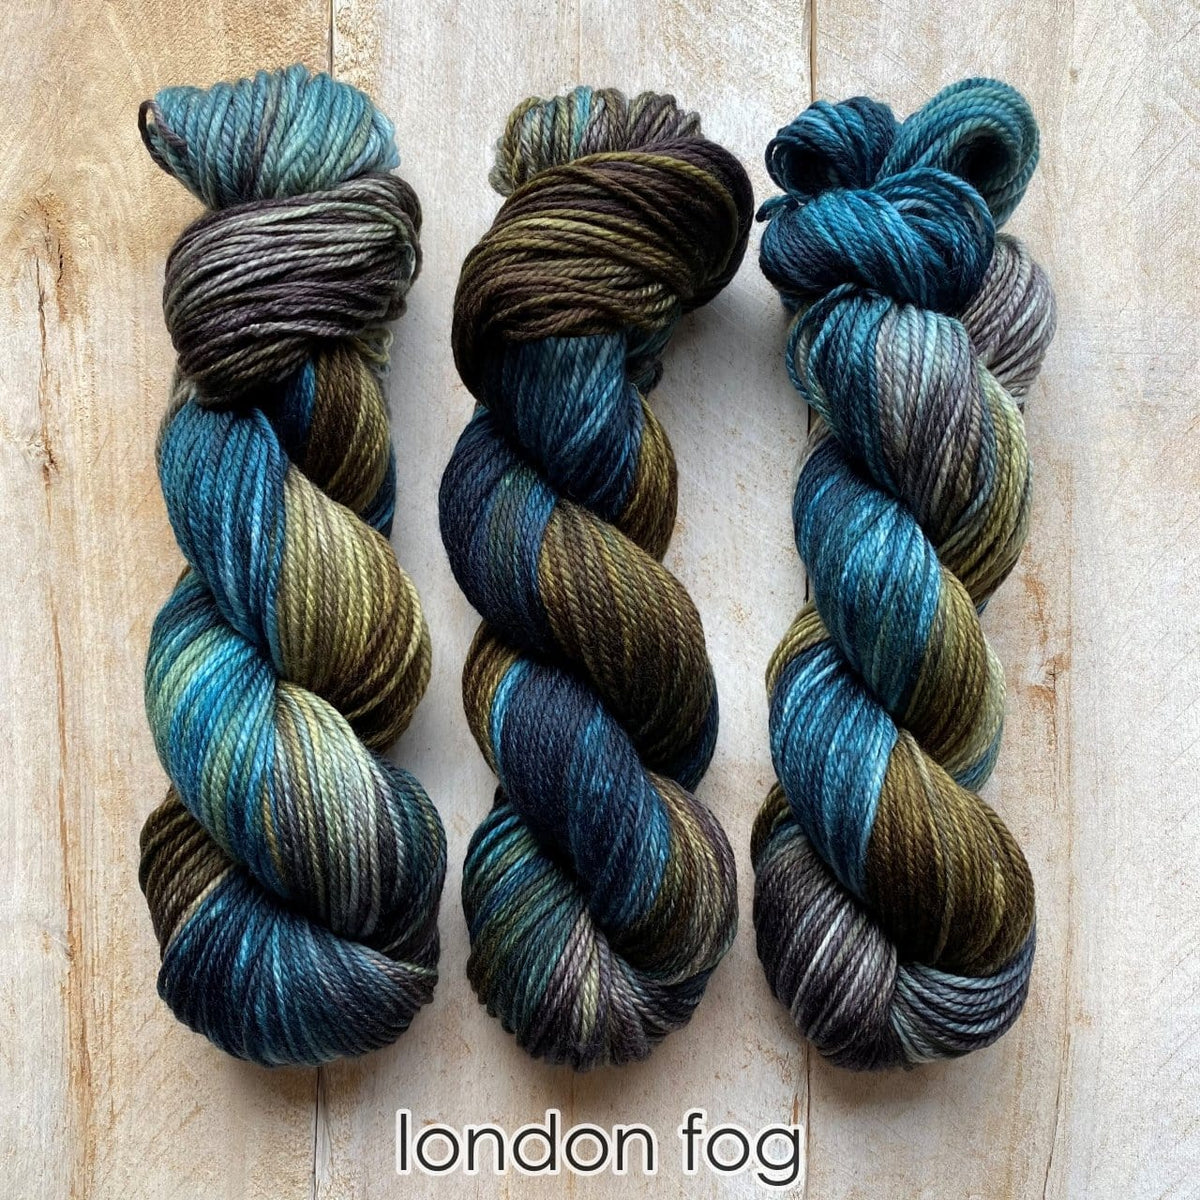 LONDON FOG MERINO WORSTED